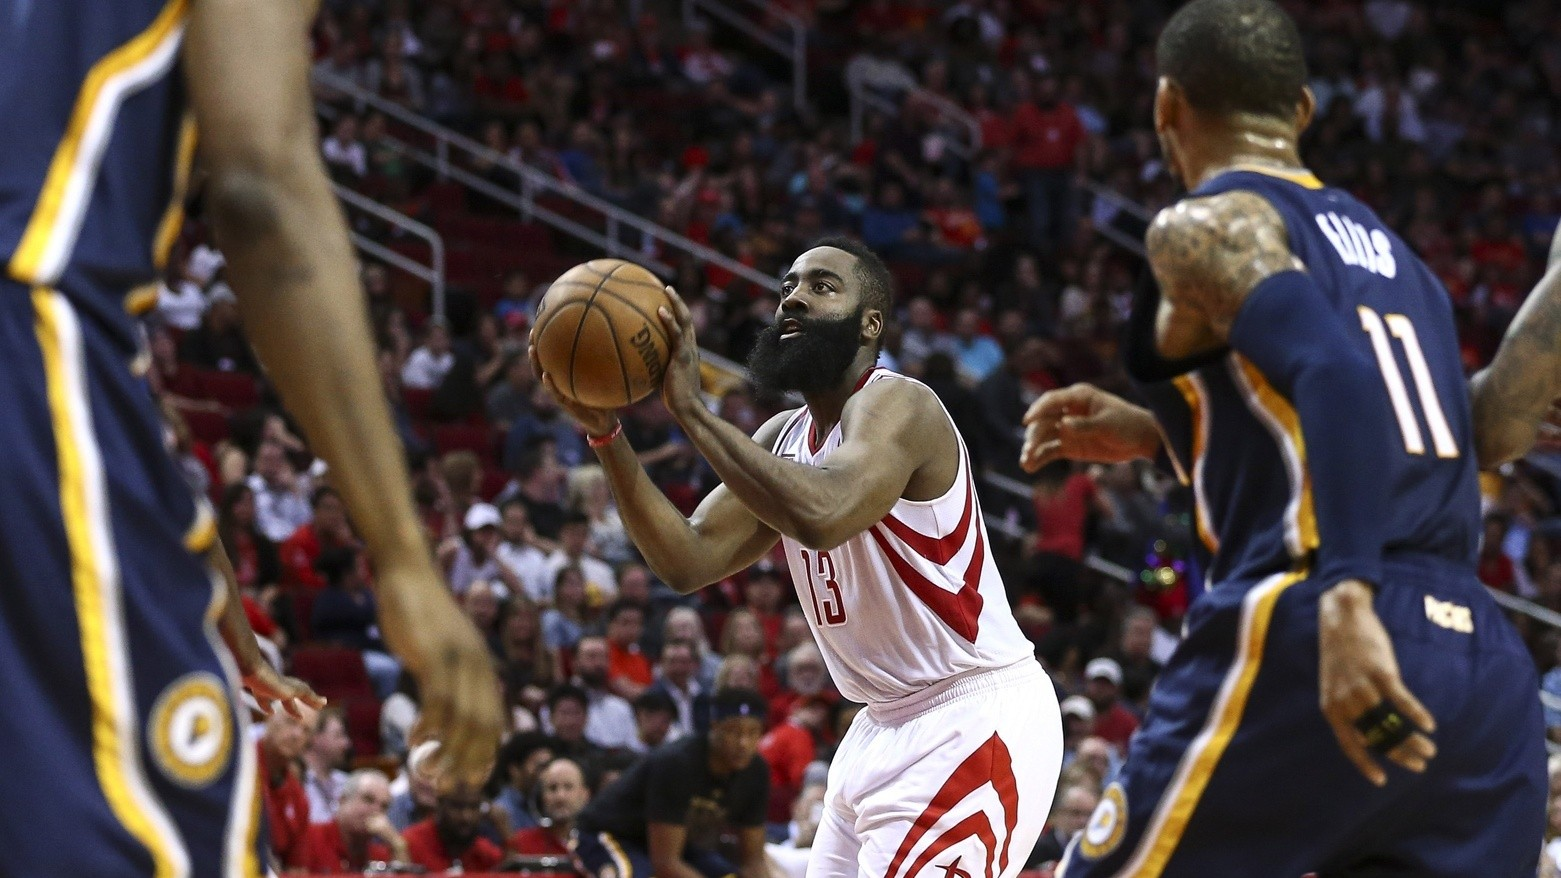 Screw Defense! Can Harden and the Rockets Bomb Their Way to a Title? Cookies 46